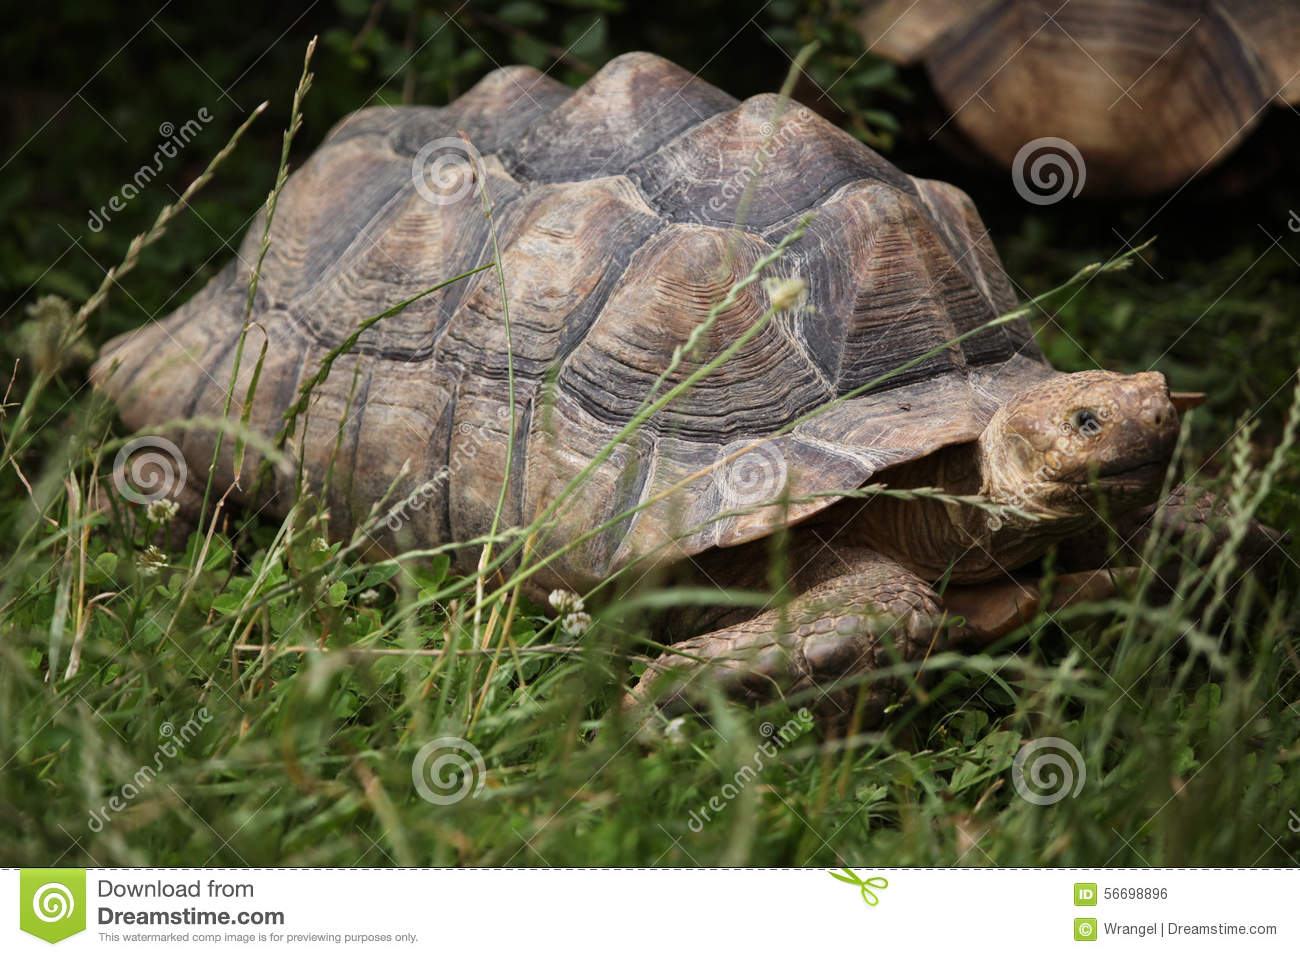 Sulcata Tortoise clipart #6, Download drawings